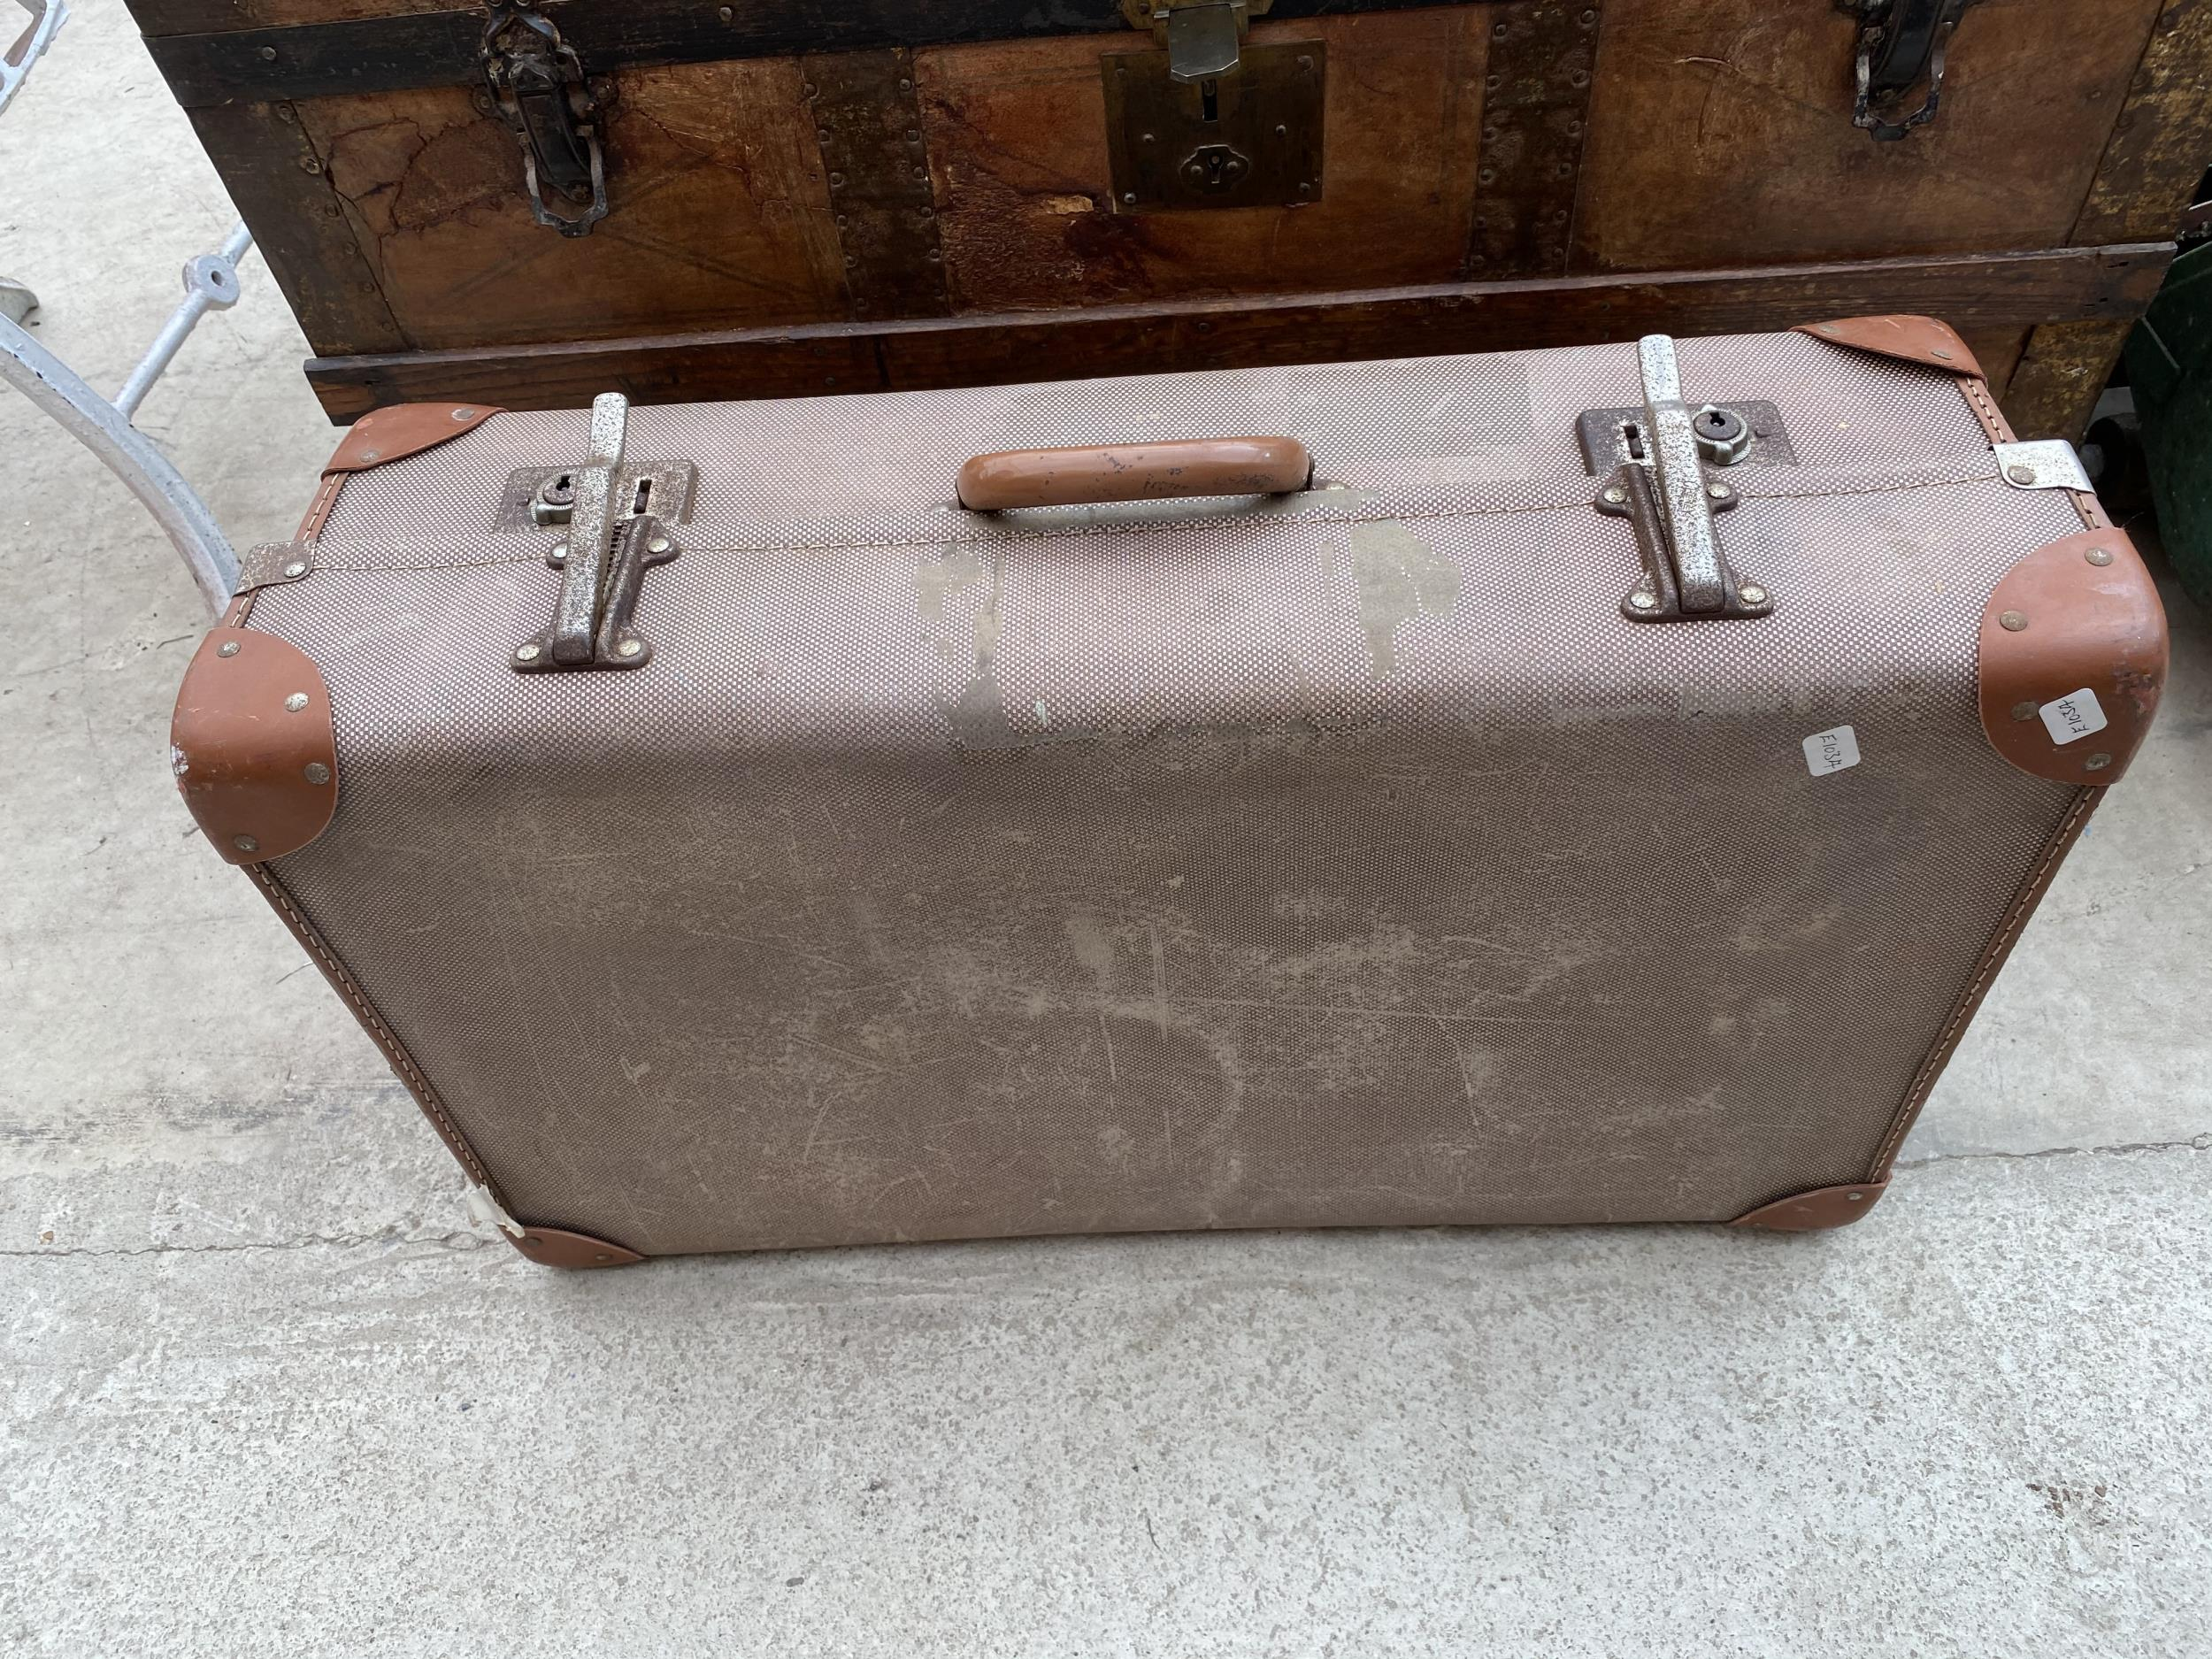 A VINTAGE WOODEN STORAGE CHEST WITH DECORATIVE WOODEN BANDING AND METAL STUD WORK AND A FURTHER - Image 4 of 4